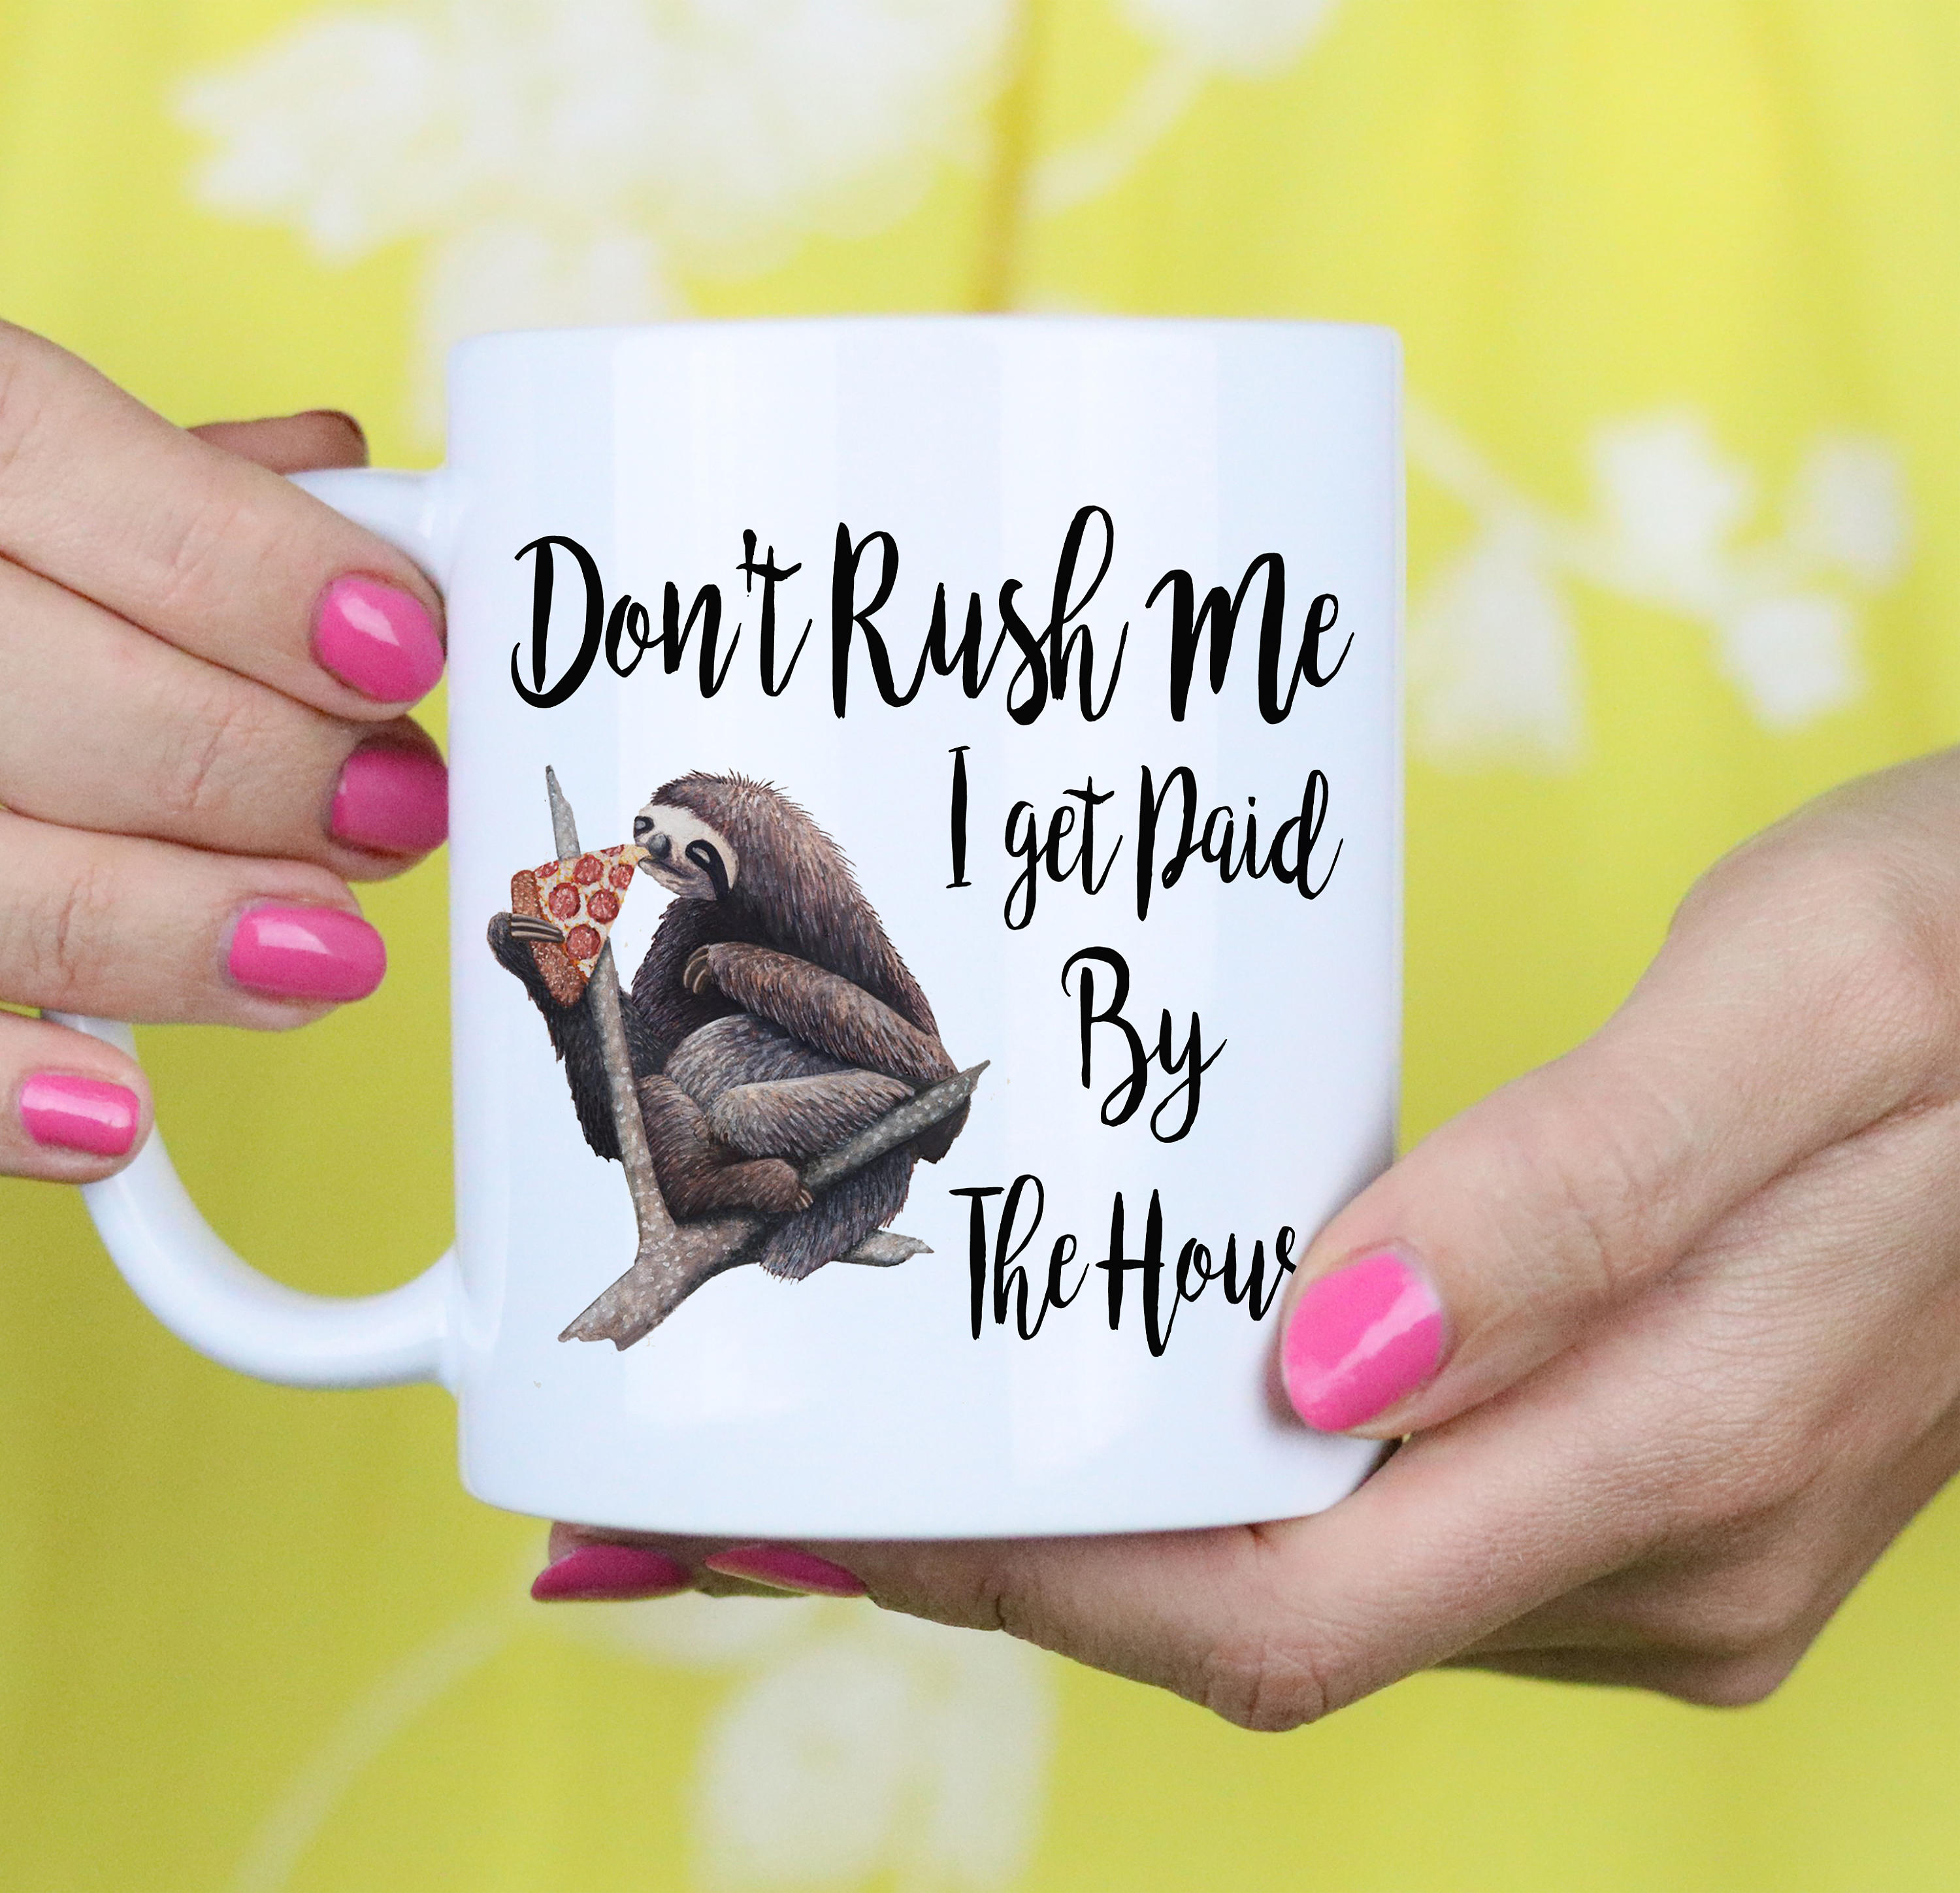 Funny Sloth MUG - Don't rush me, I get paid by the hour